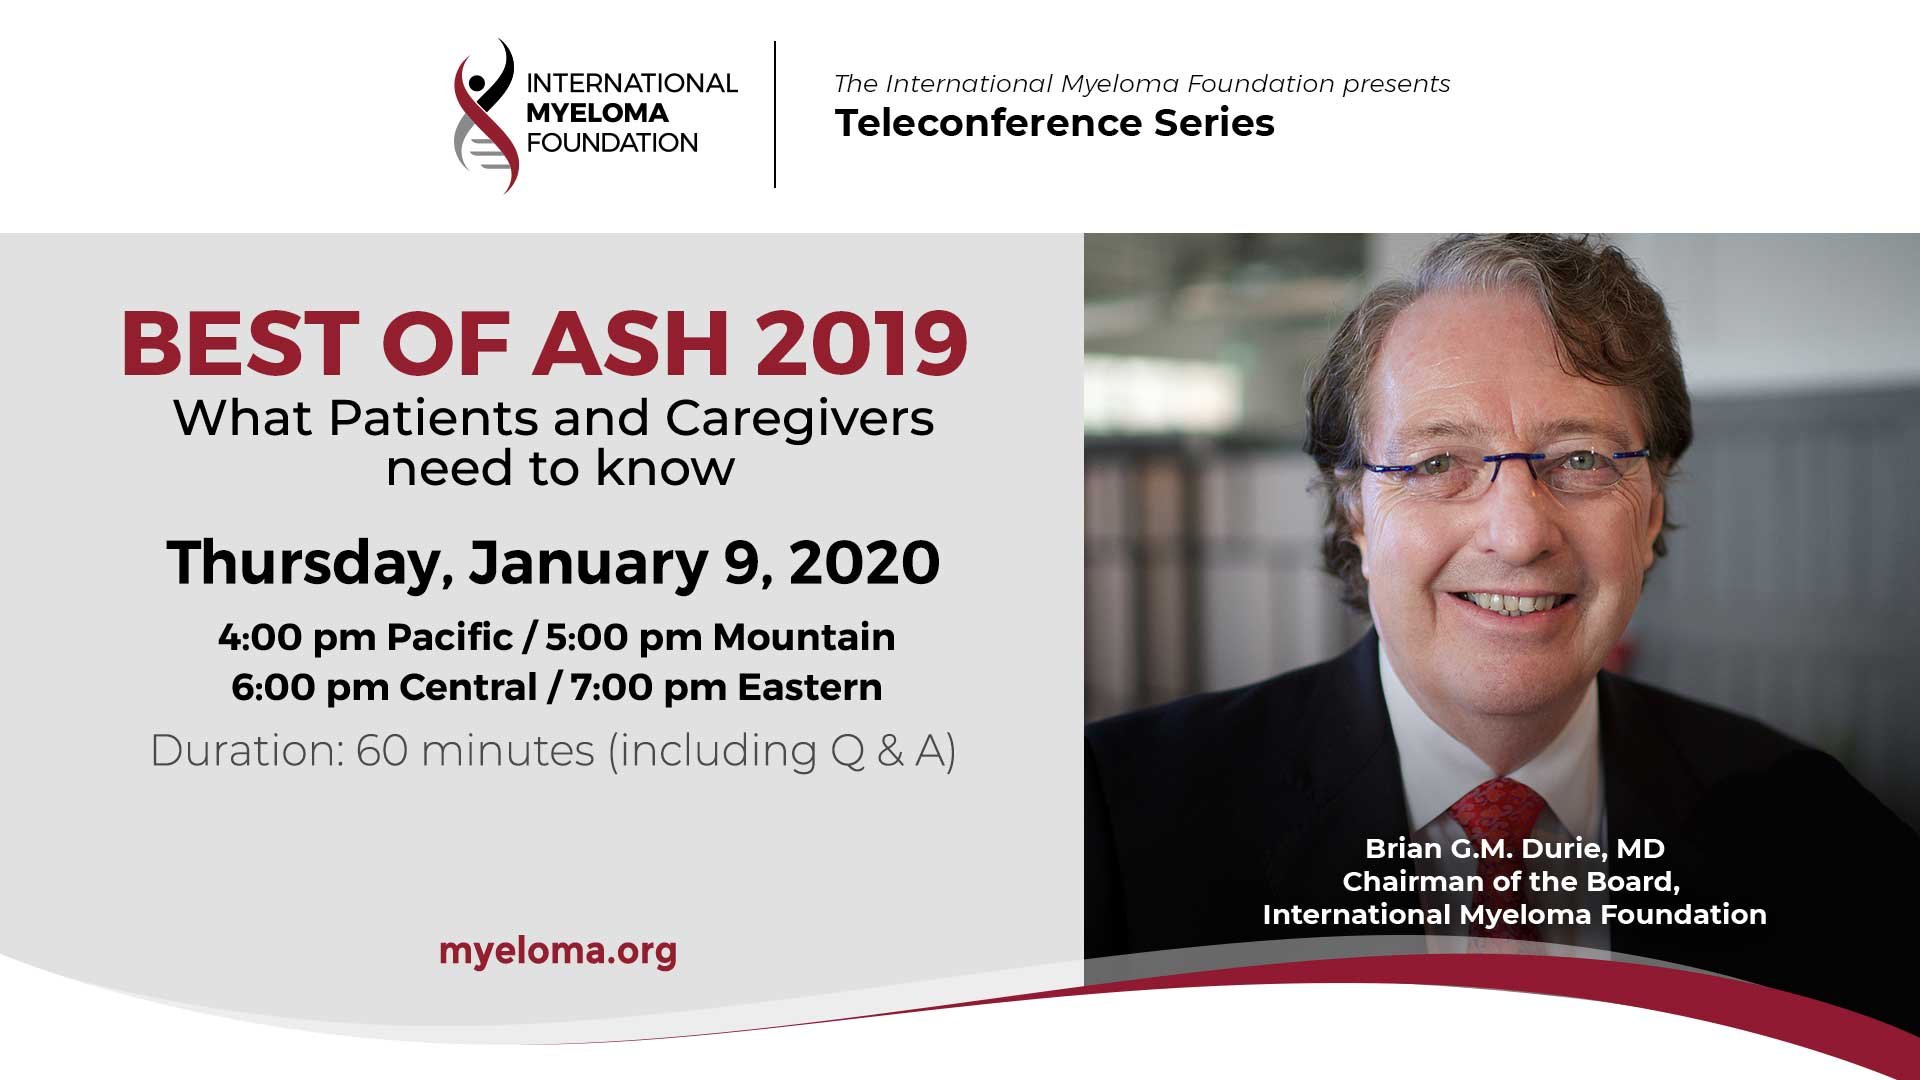 Best of ASH 2019 cover image